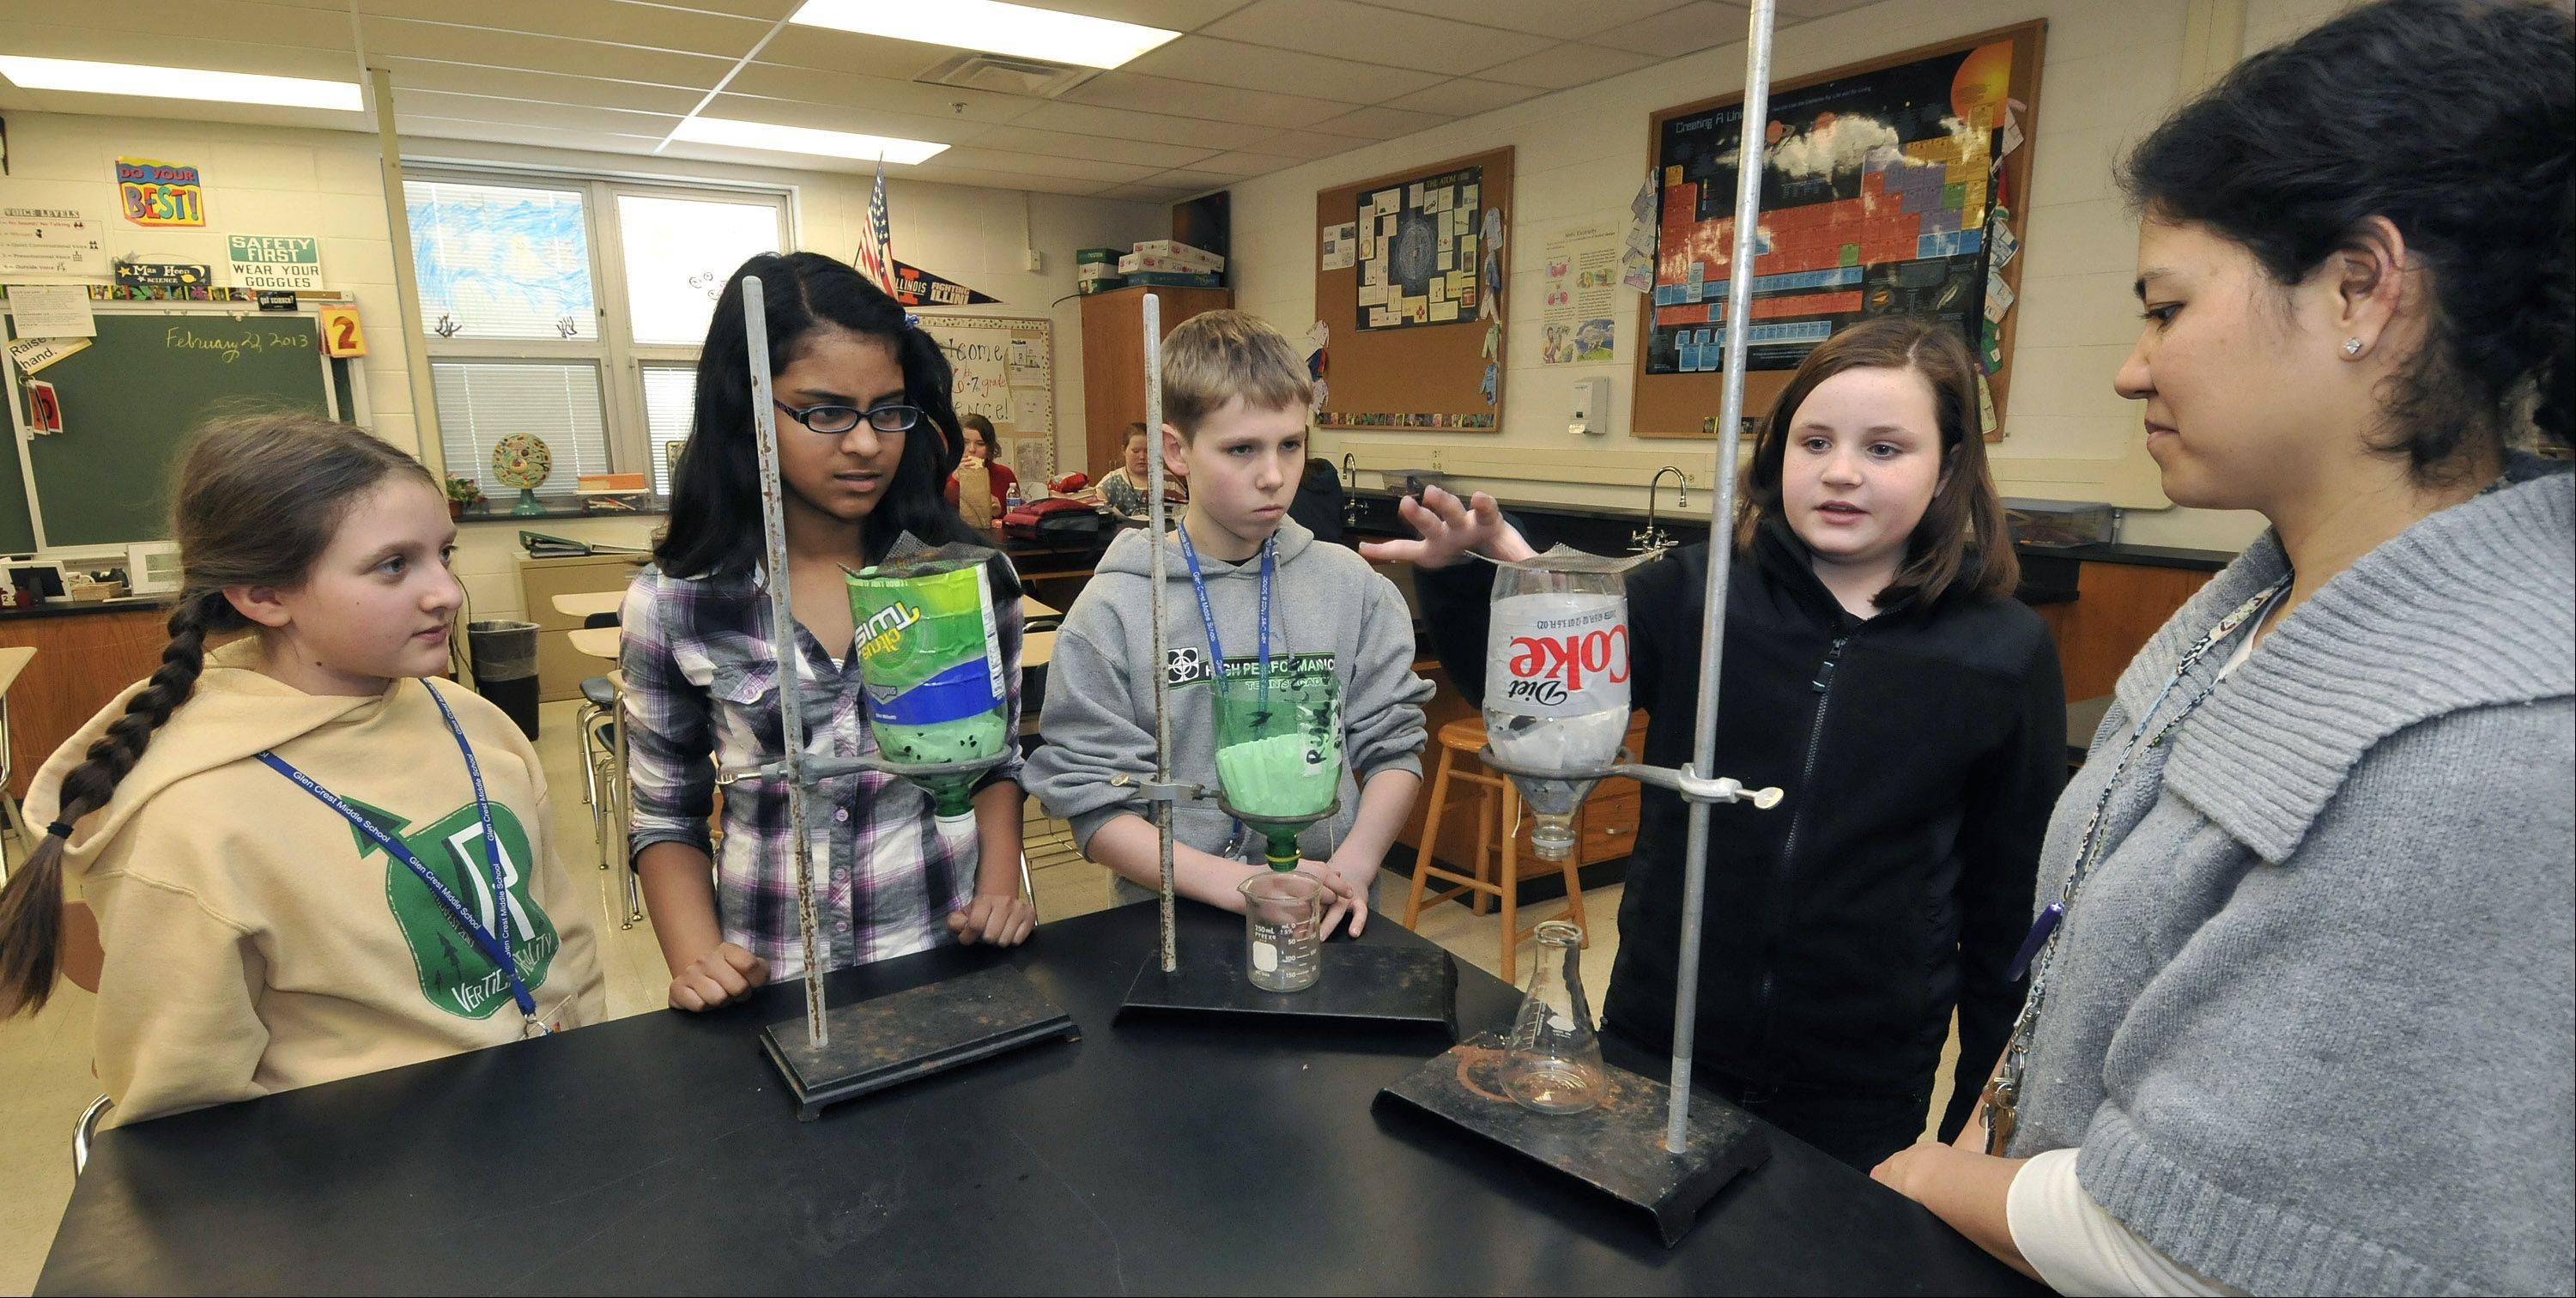 Glen Crest Middle School sixth-graders Molly Friedman, Sohini Surapaneni, Alex Bergendorf and Rachel Jordan join teacher Jennifer Rodriguez in demonstrating some of the experiments they did to purify water.